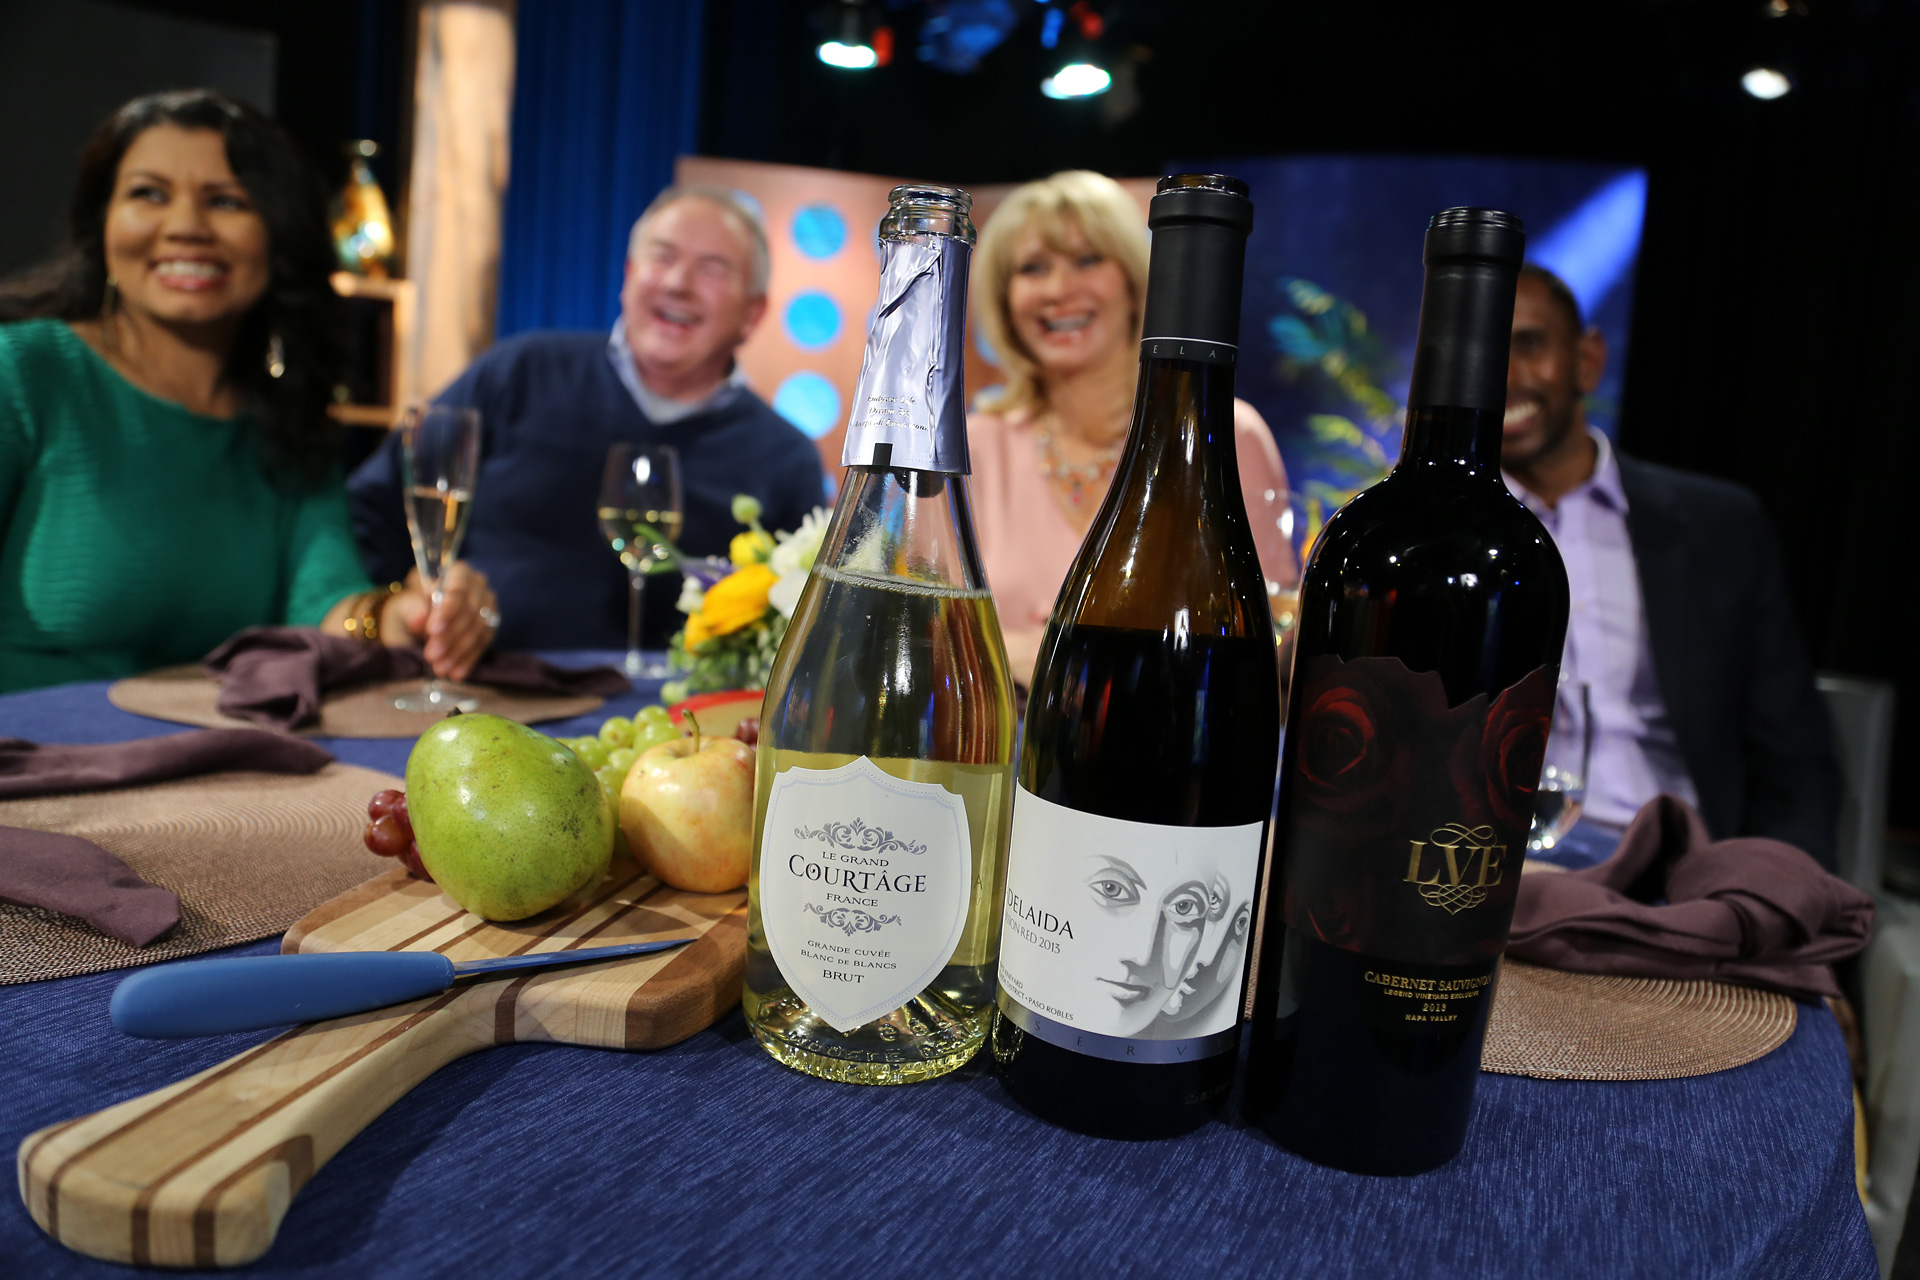 Wines that guests drank on the set of the eighth episode of season 11.